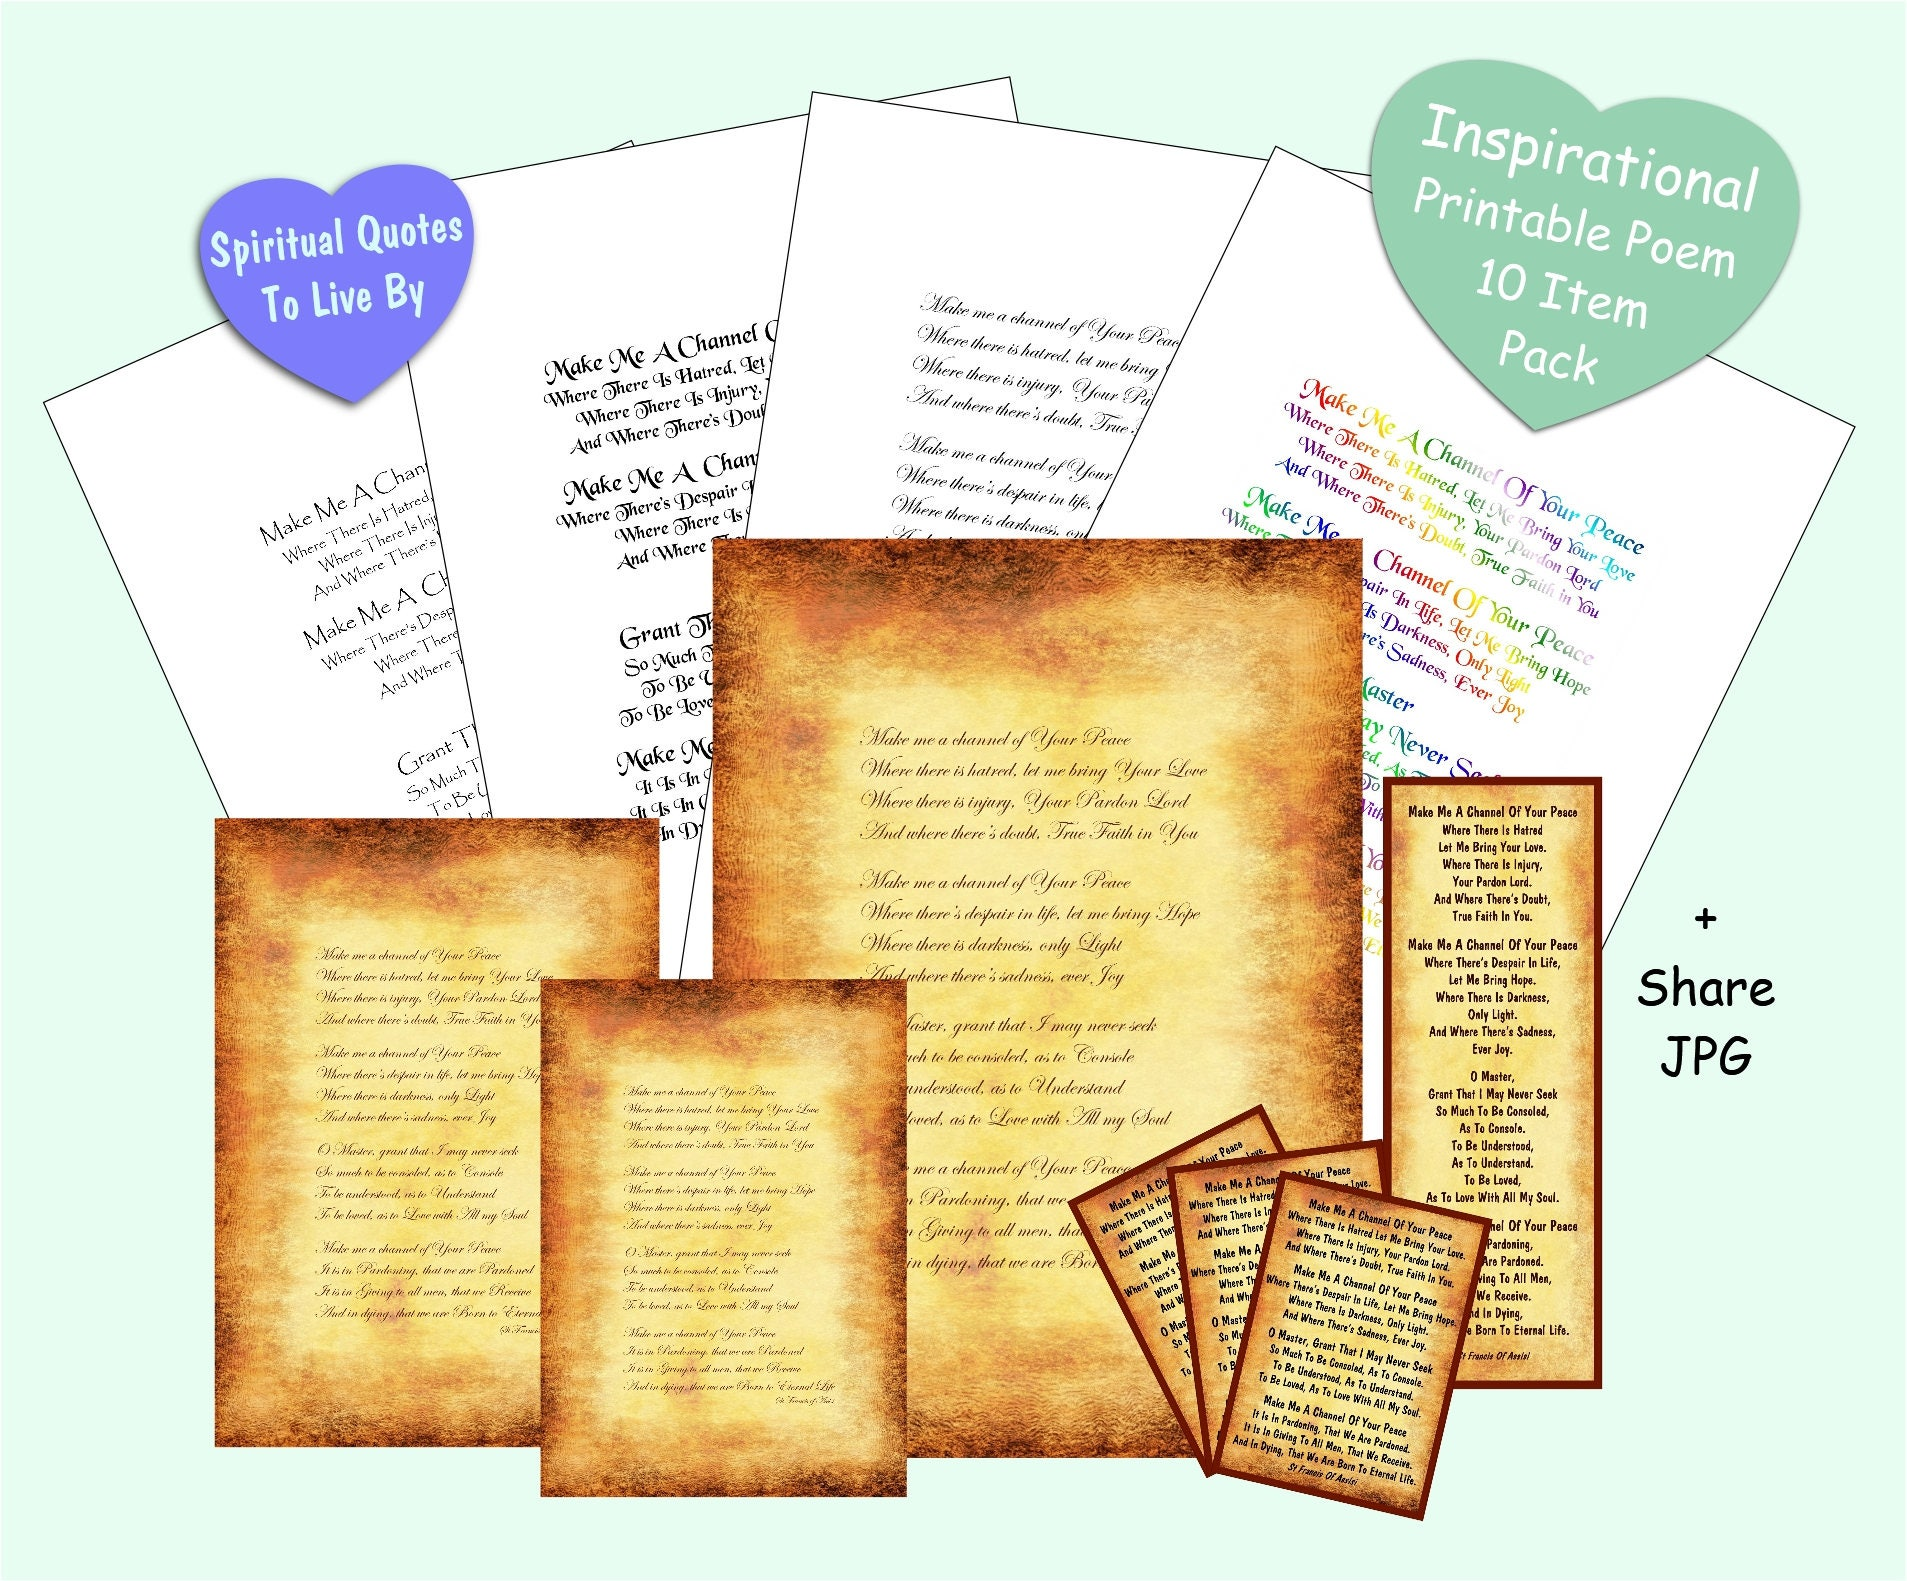 St Francis Of Isi Quotes | Make Me A Channel Of Your Peace Printable 10 Item Pack St Etsy